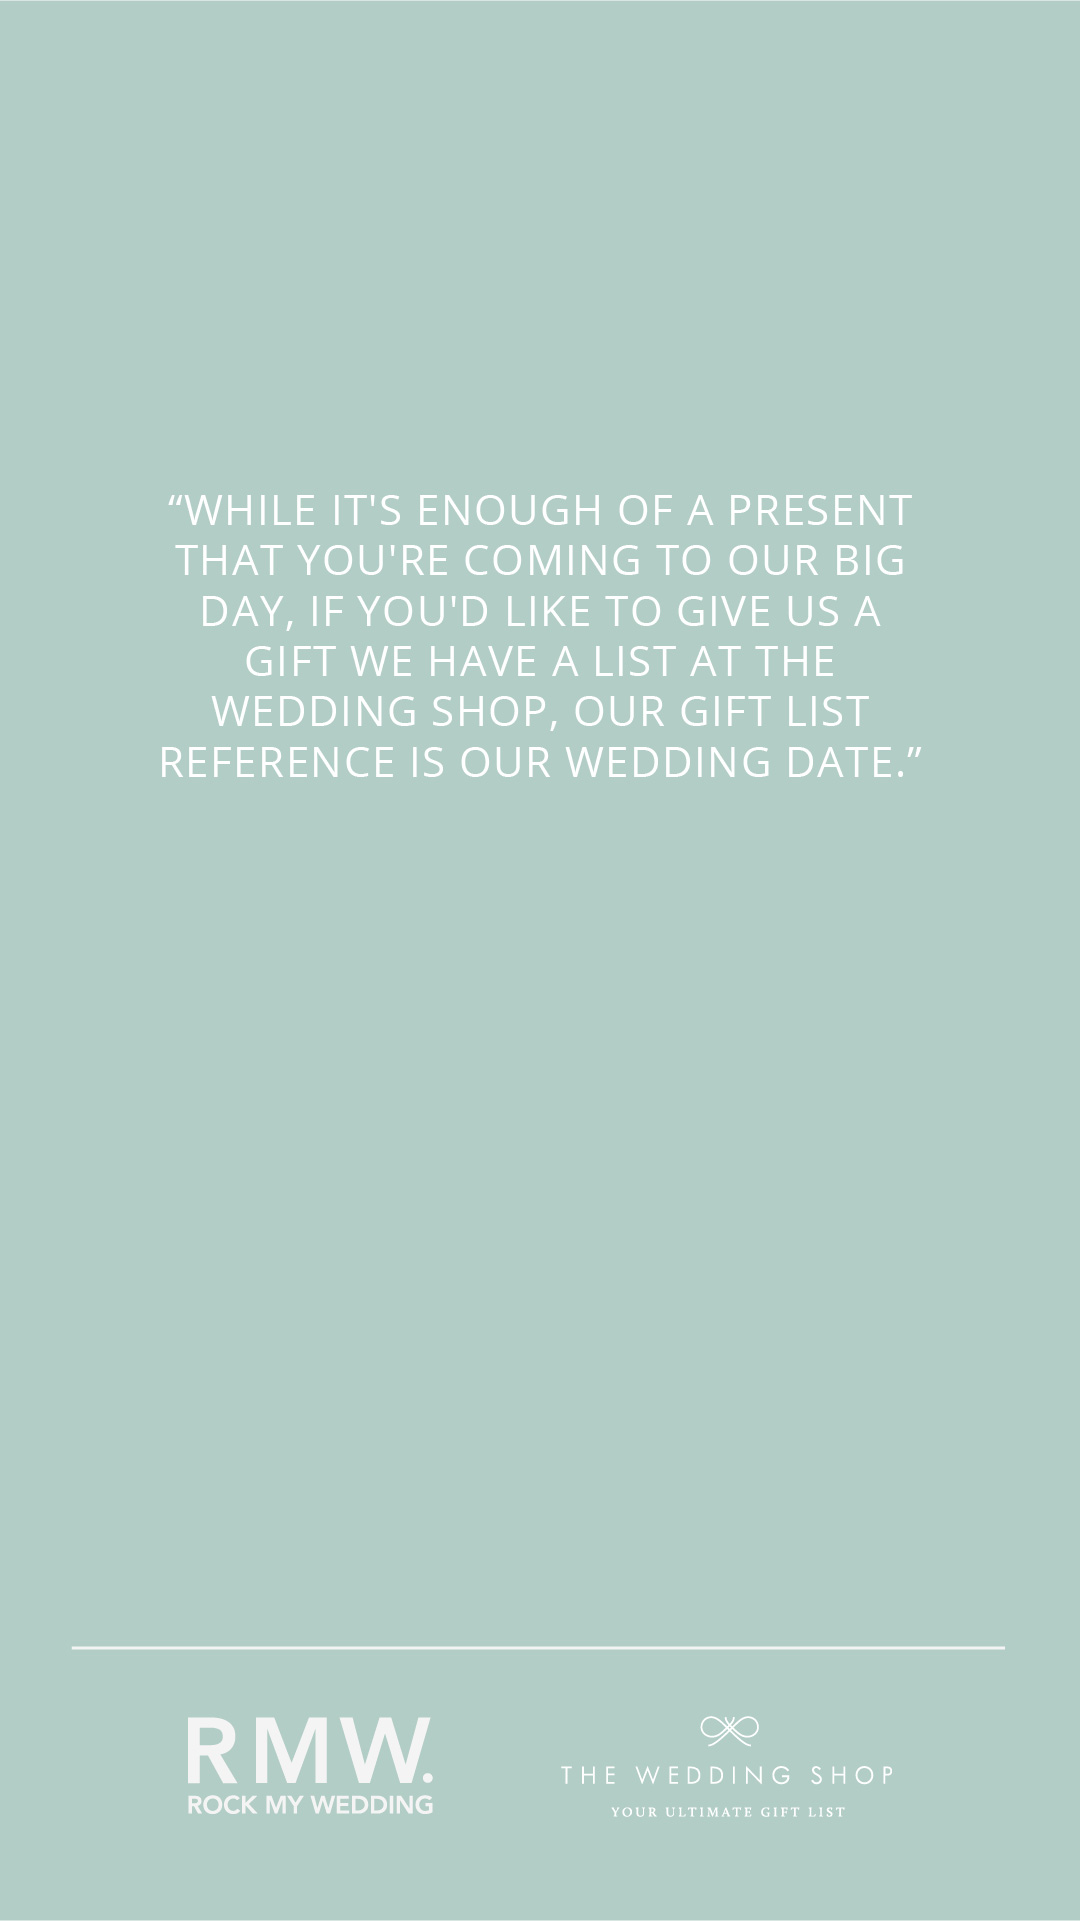 Wedding Gift List Wording Examples How To Ask Graciously